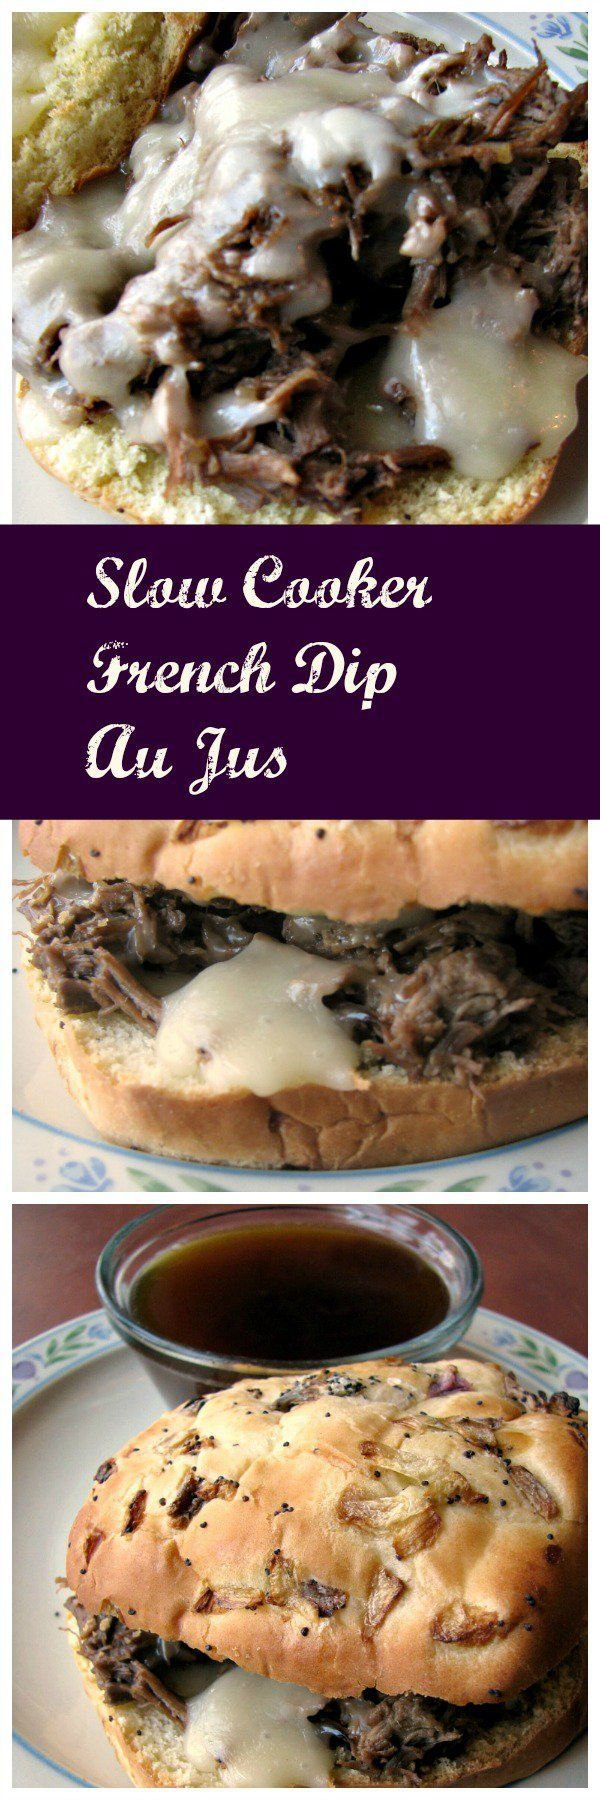 The classic recipe made easy! This Slow Cooker French Dip Au Jus takes just a few minutes to prepare, and is full of flavor. Grown-ups and kids will love this classic sandwich made at home!